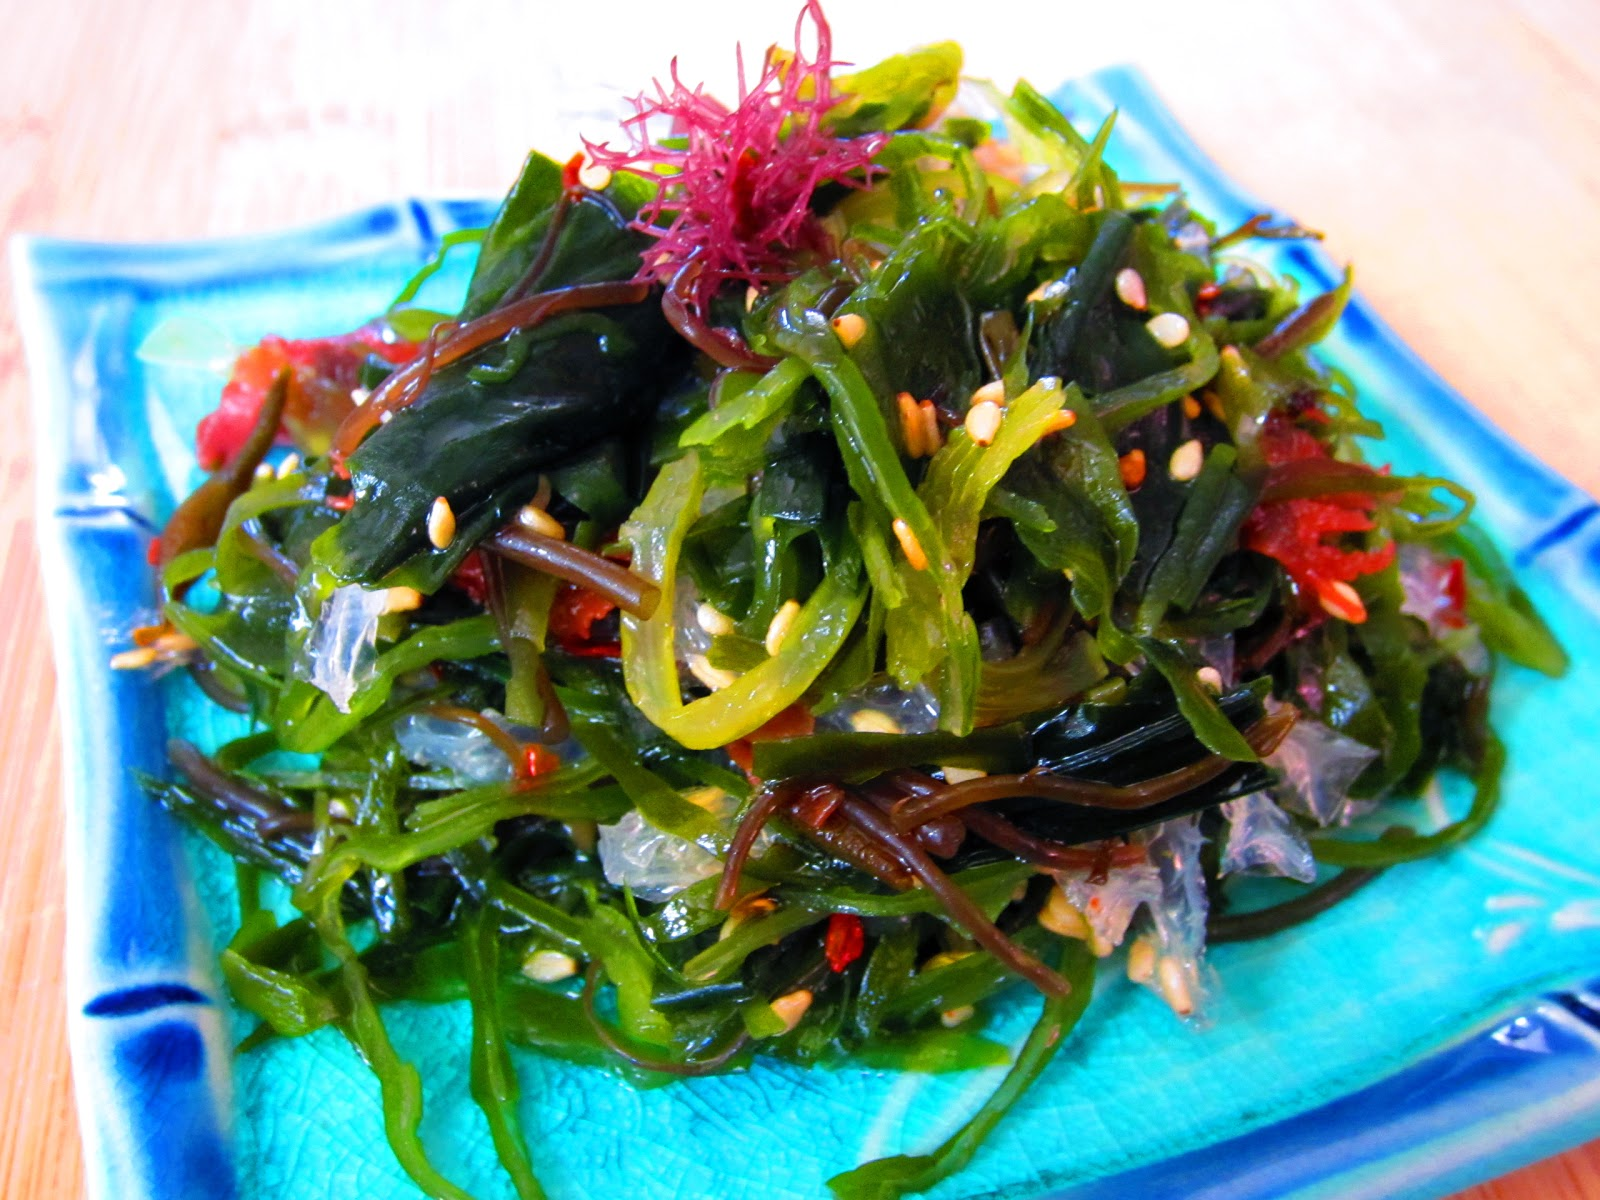 How to prepare a salad of seaweed